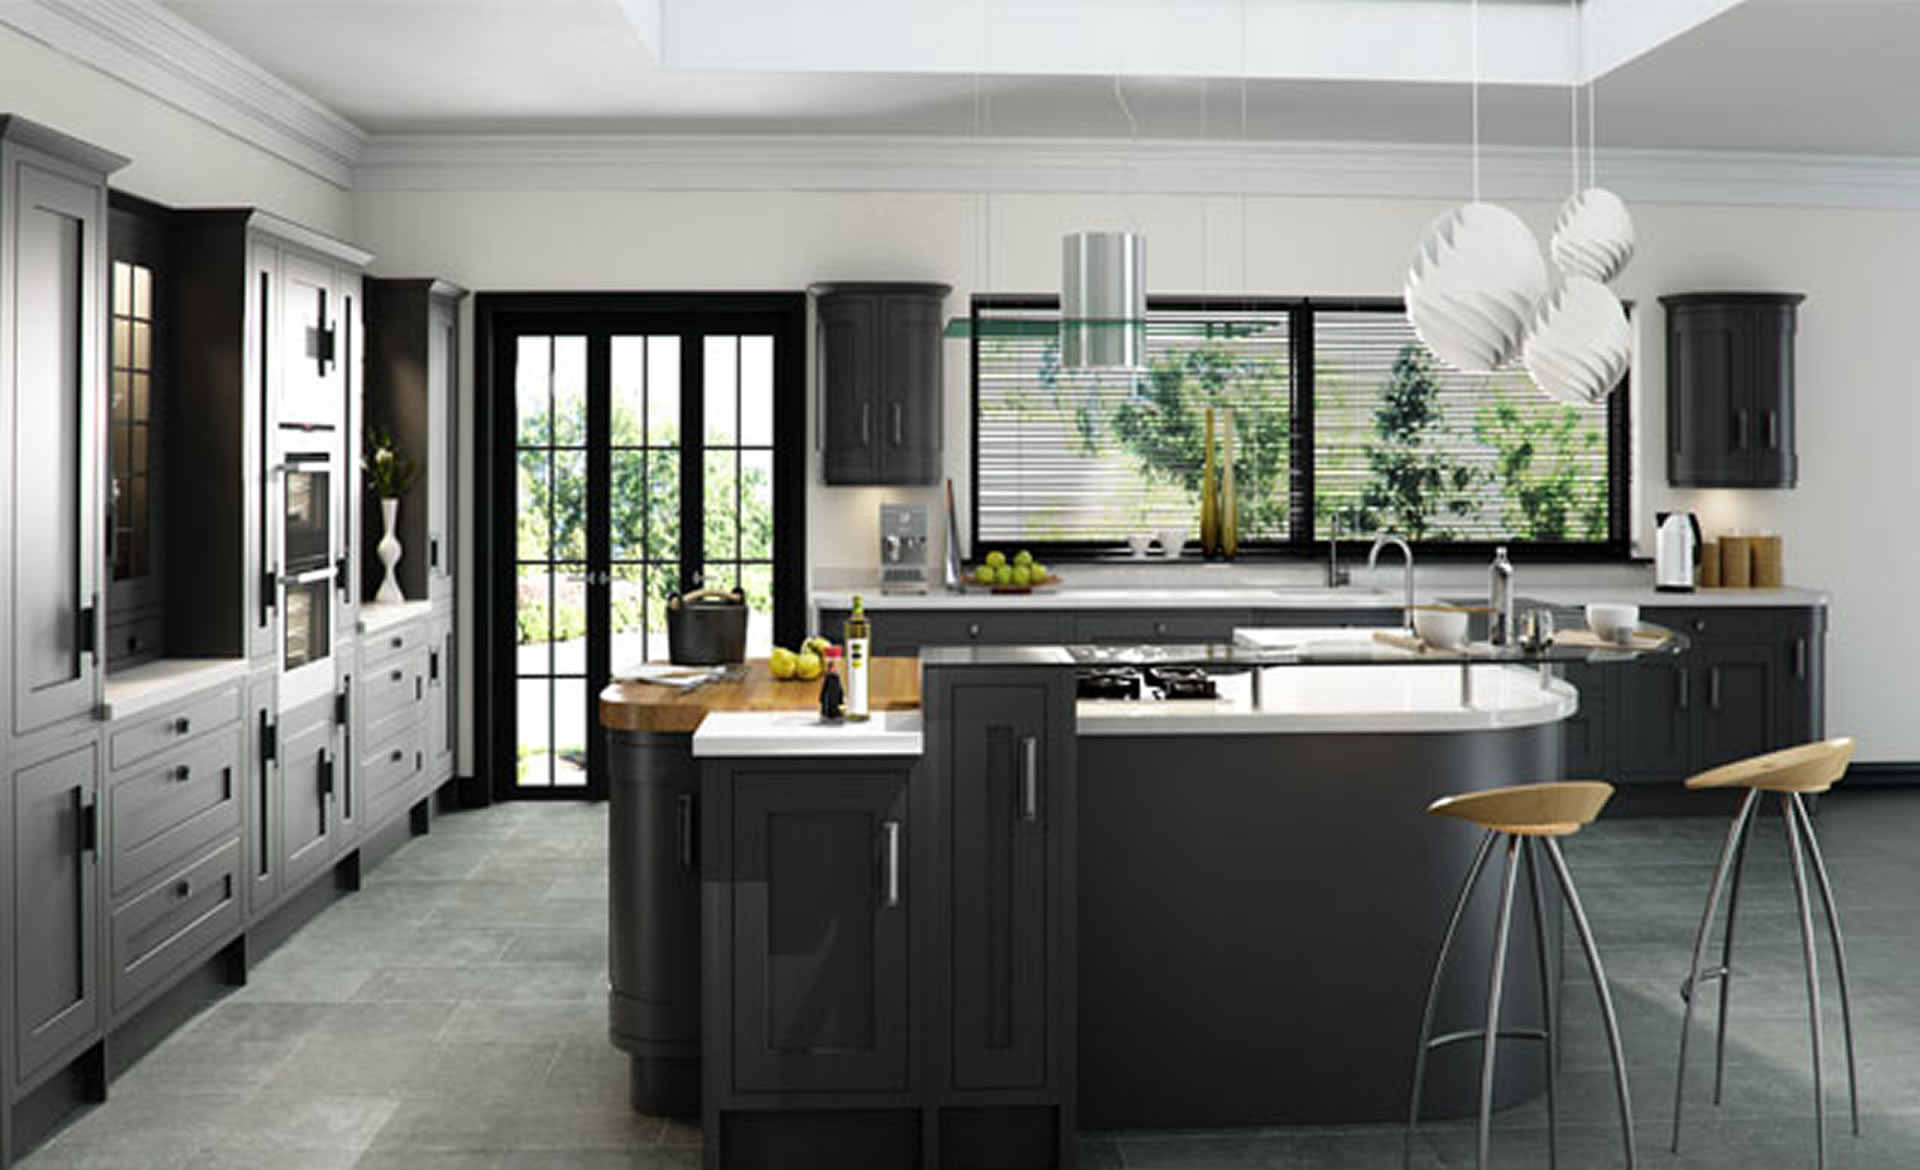 Kitchen Units Kitchen Cabinets Designs Supplied By Superior Cabinets - Graphite grey kitchen units & A Whitewashed Wooden Floor Kitchen With Graphite Vintage Grey. 30 ...